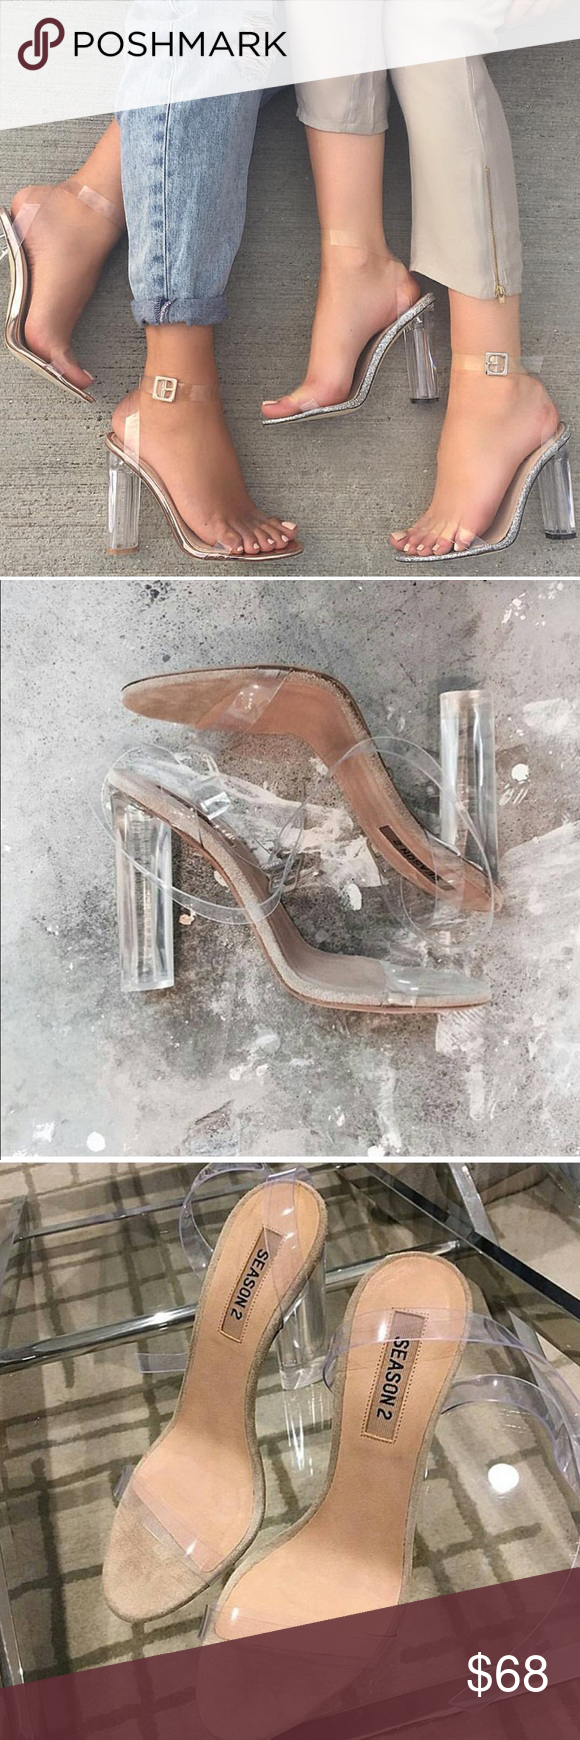 df6e16c8ef Kim kardashian yeezy clear lucite nude heels New size 9 Clear Heels Shoes  Sandals